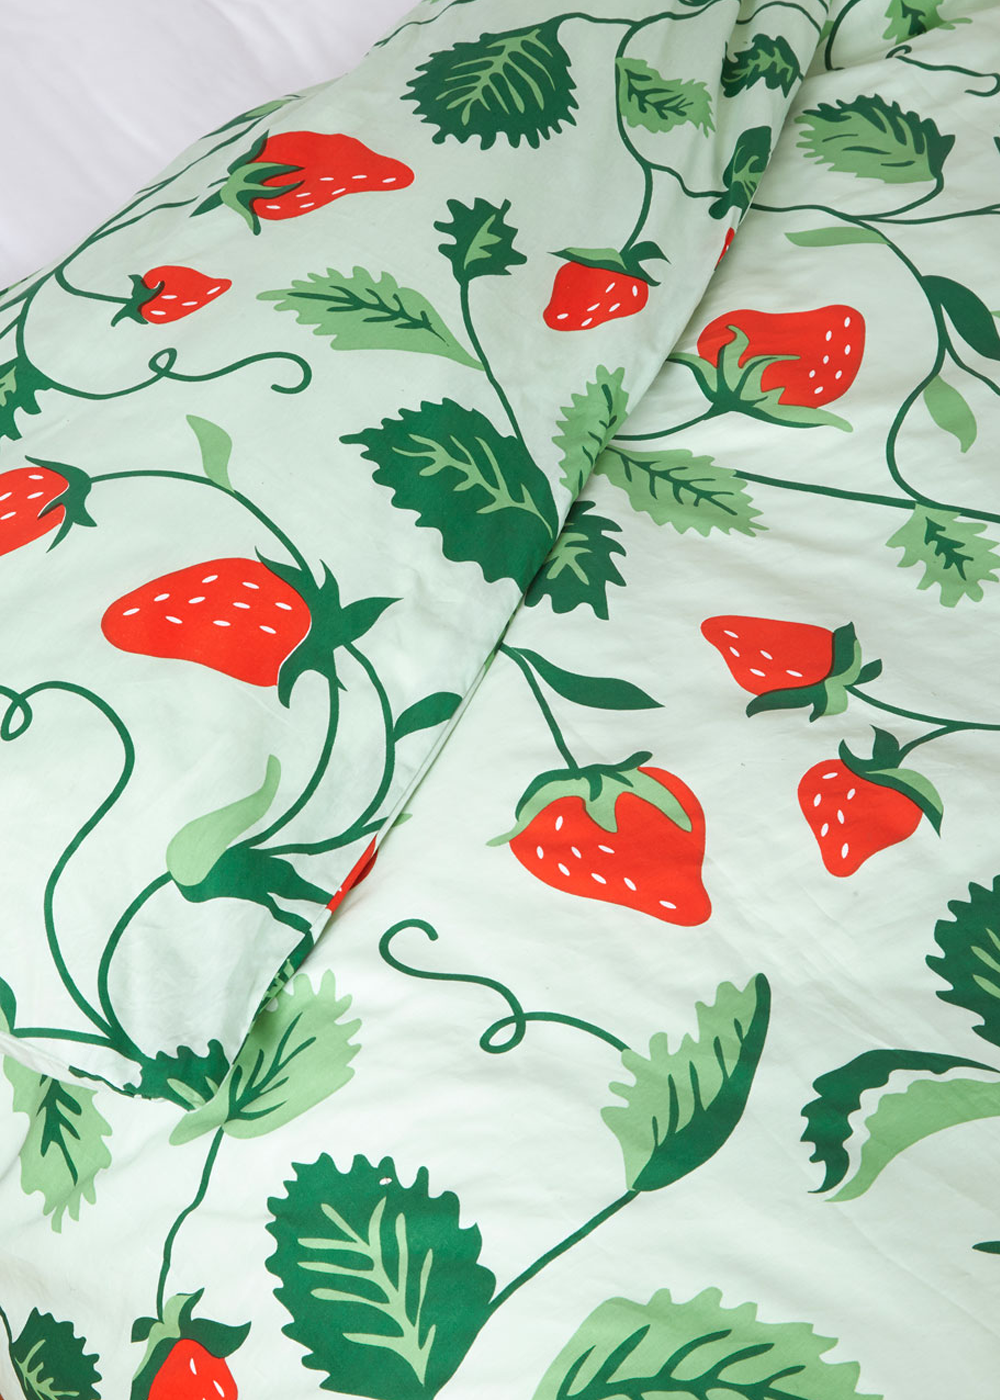 strawberry-fields-bedding/stawberry-fields-bedding-closeup.png